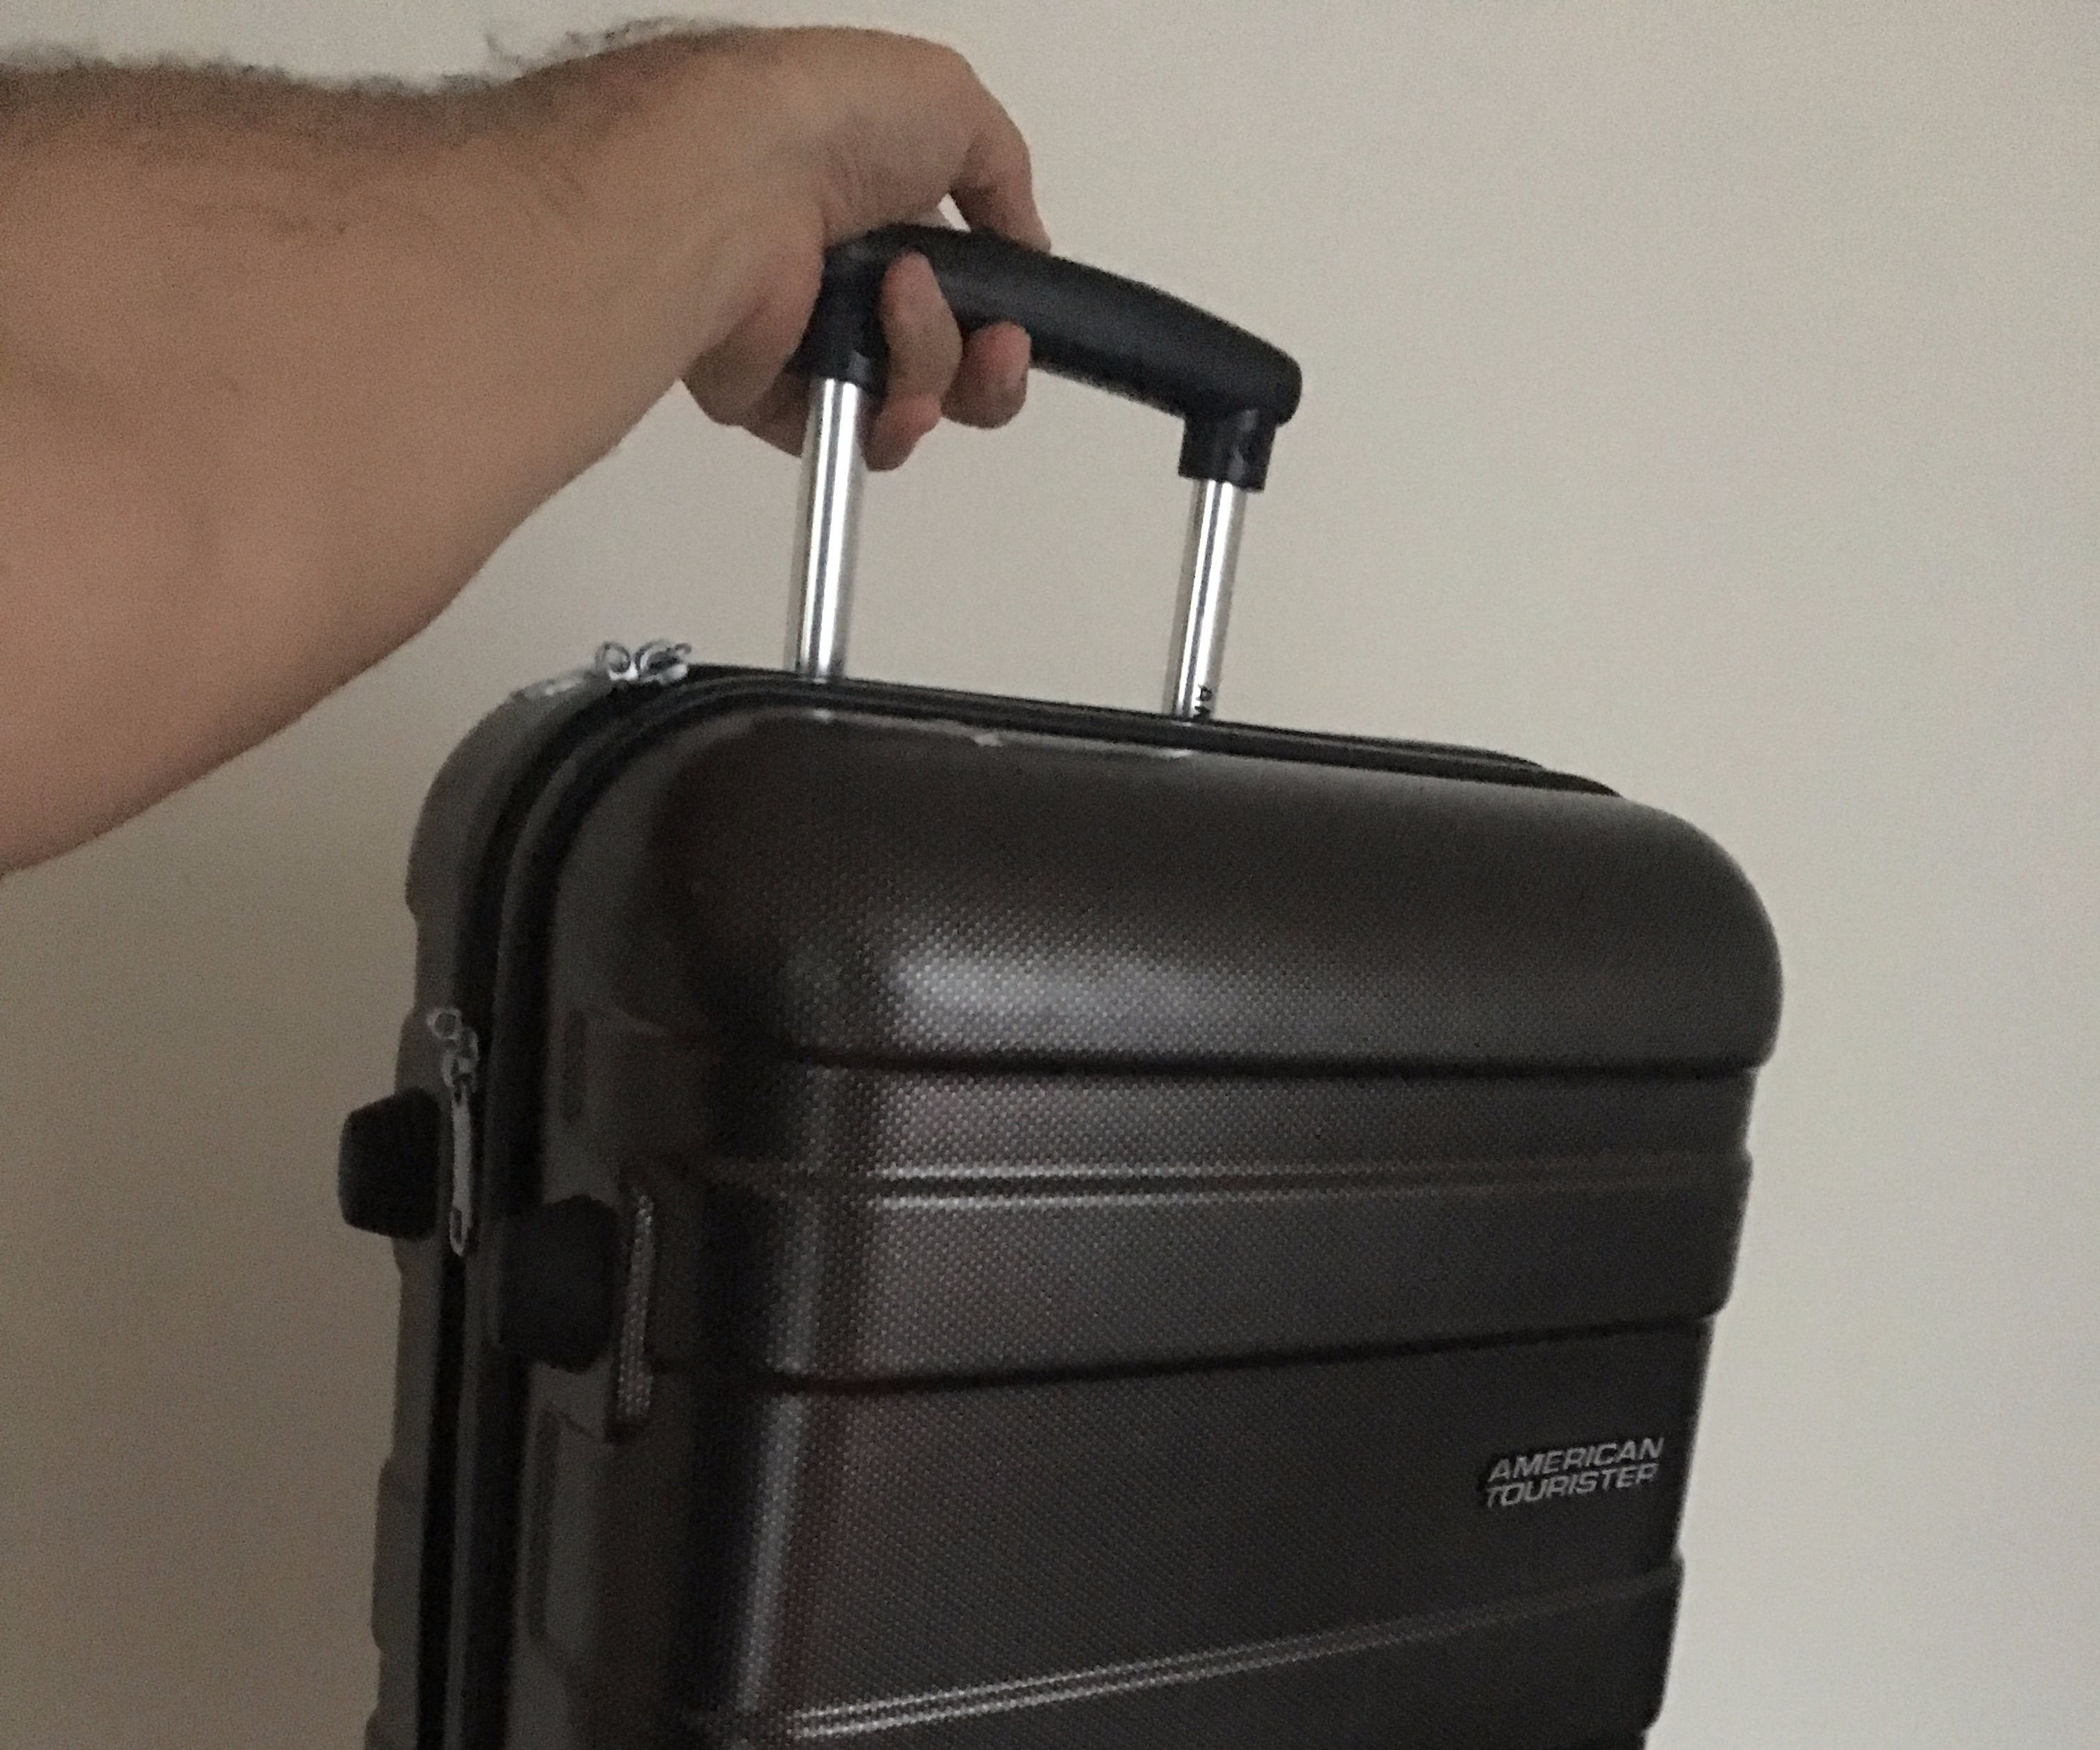 Luggage Handle Quick Fix: 4 Steps (with Pictures)